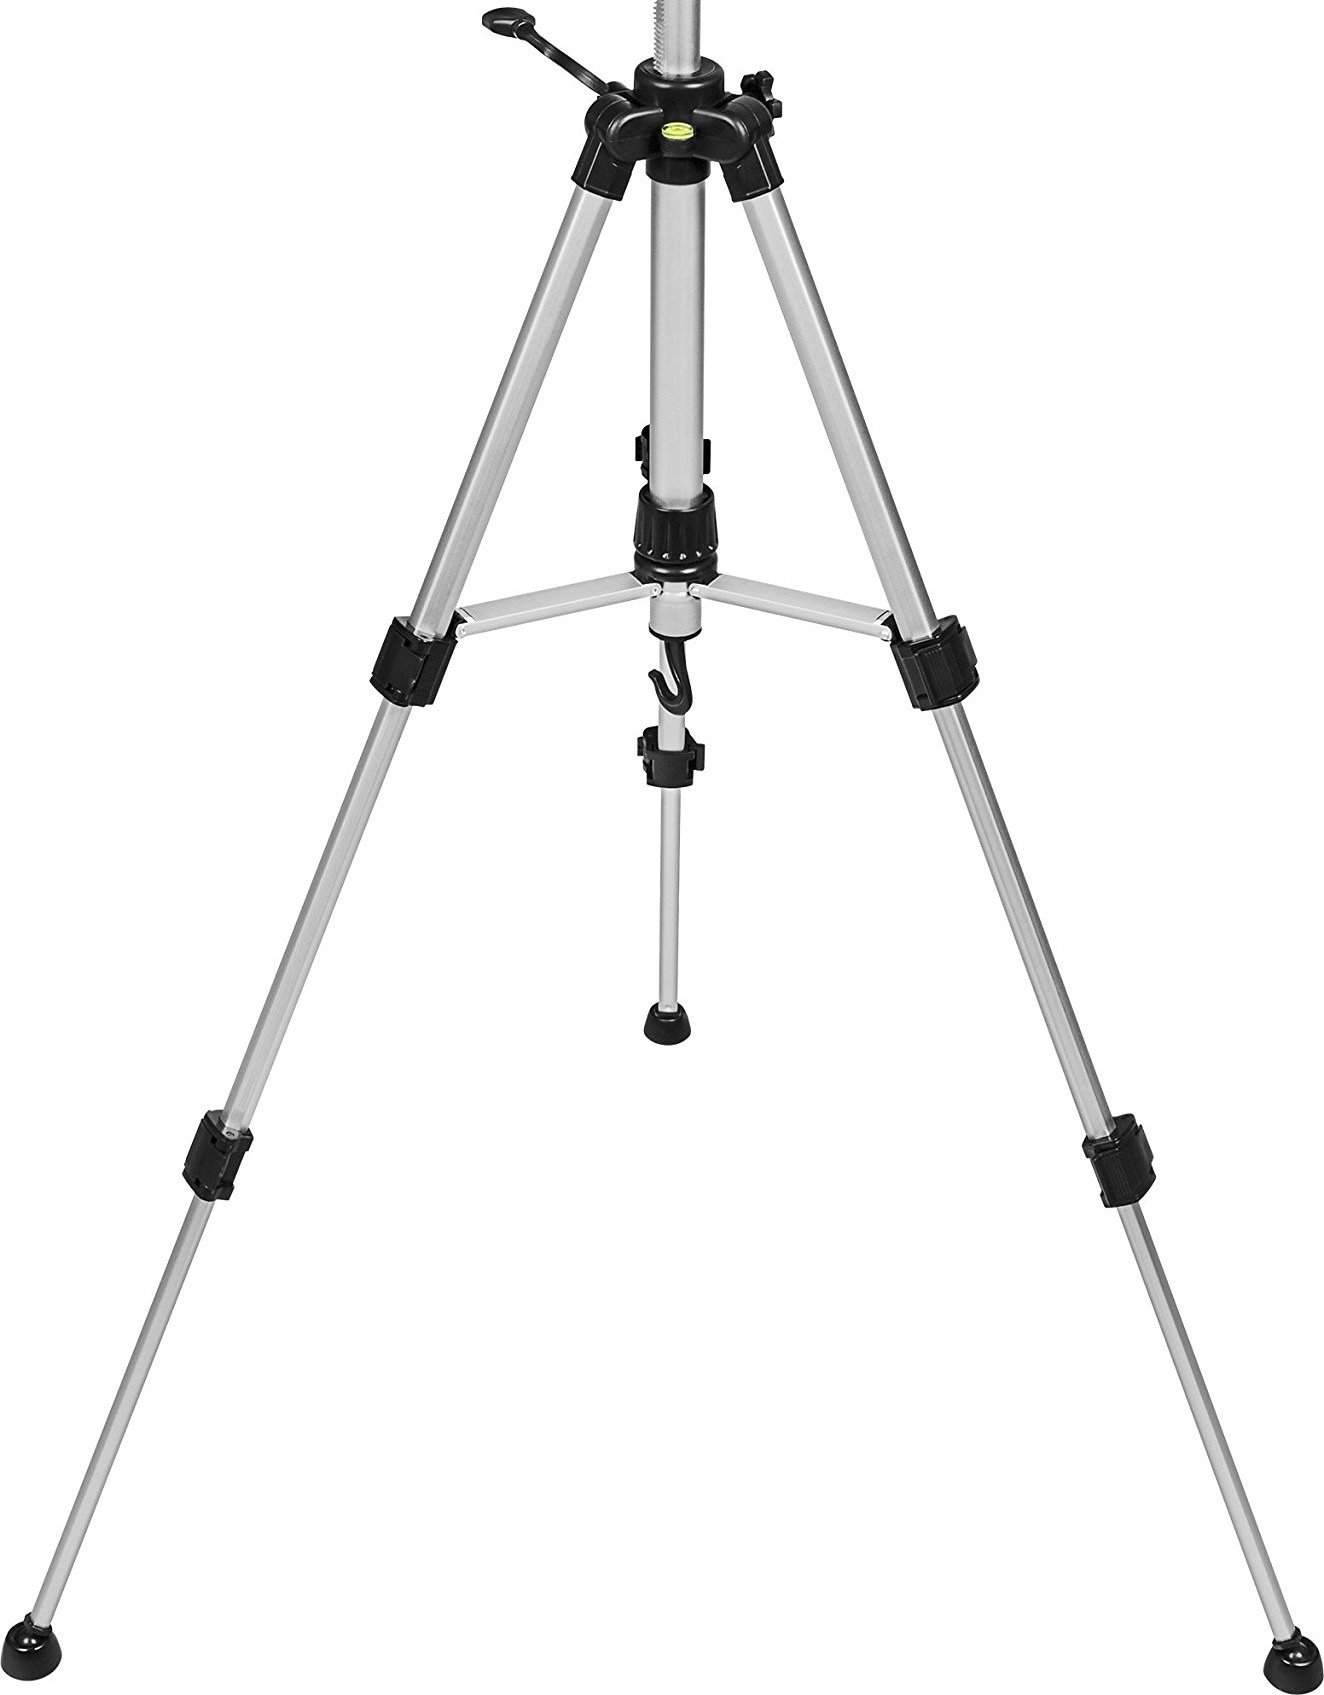 Orion GoScope 70 Review Tripod